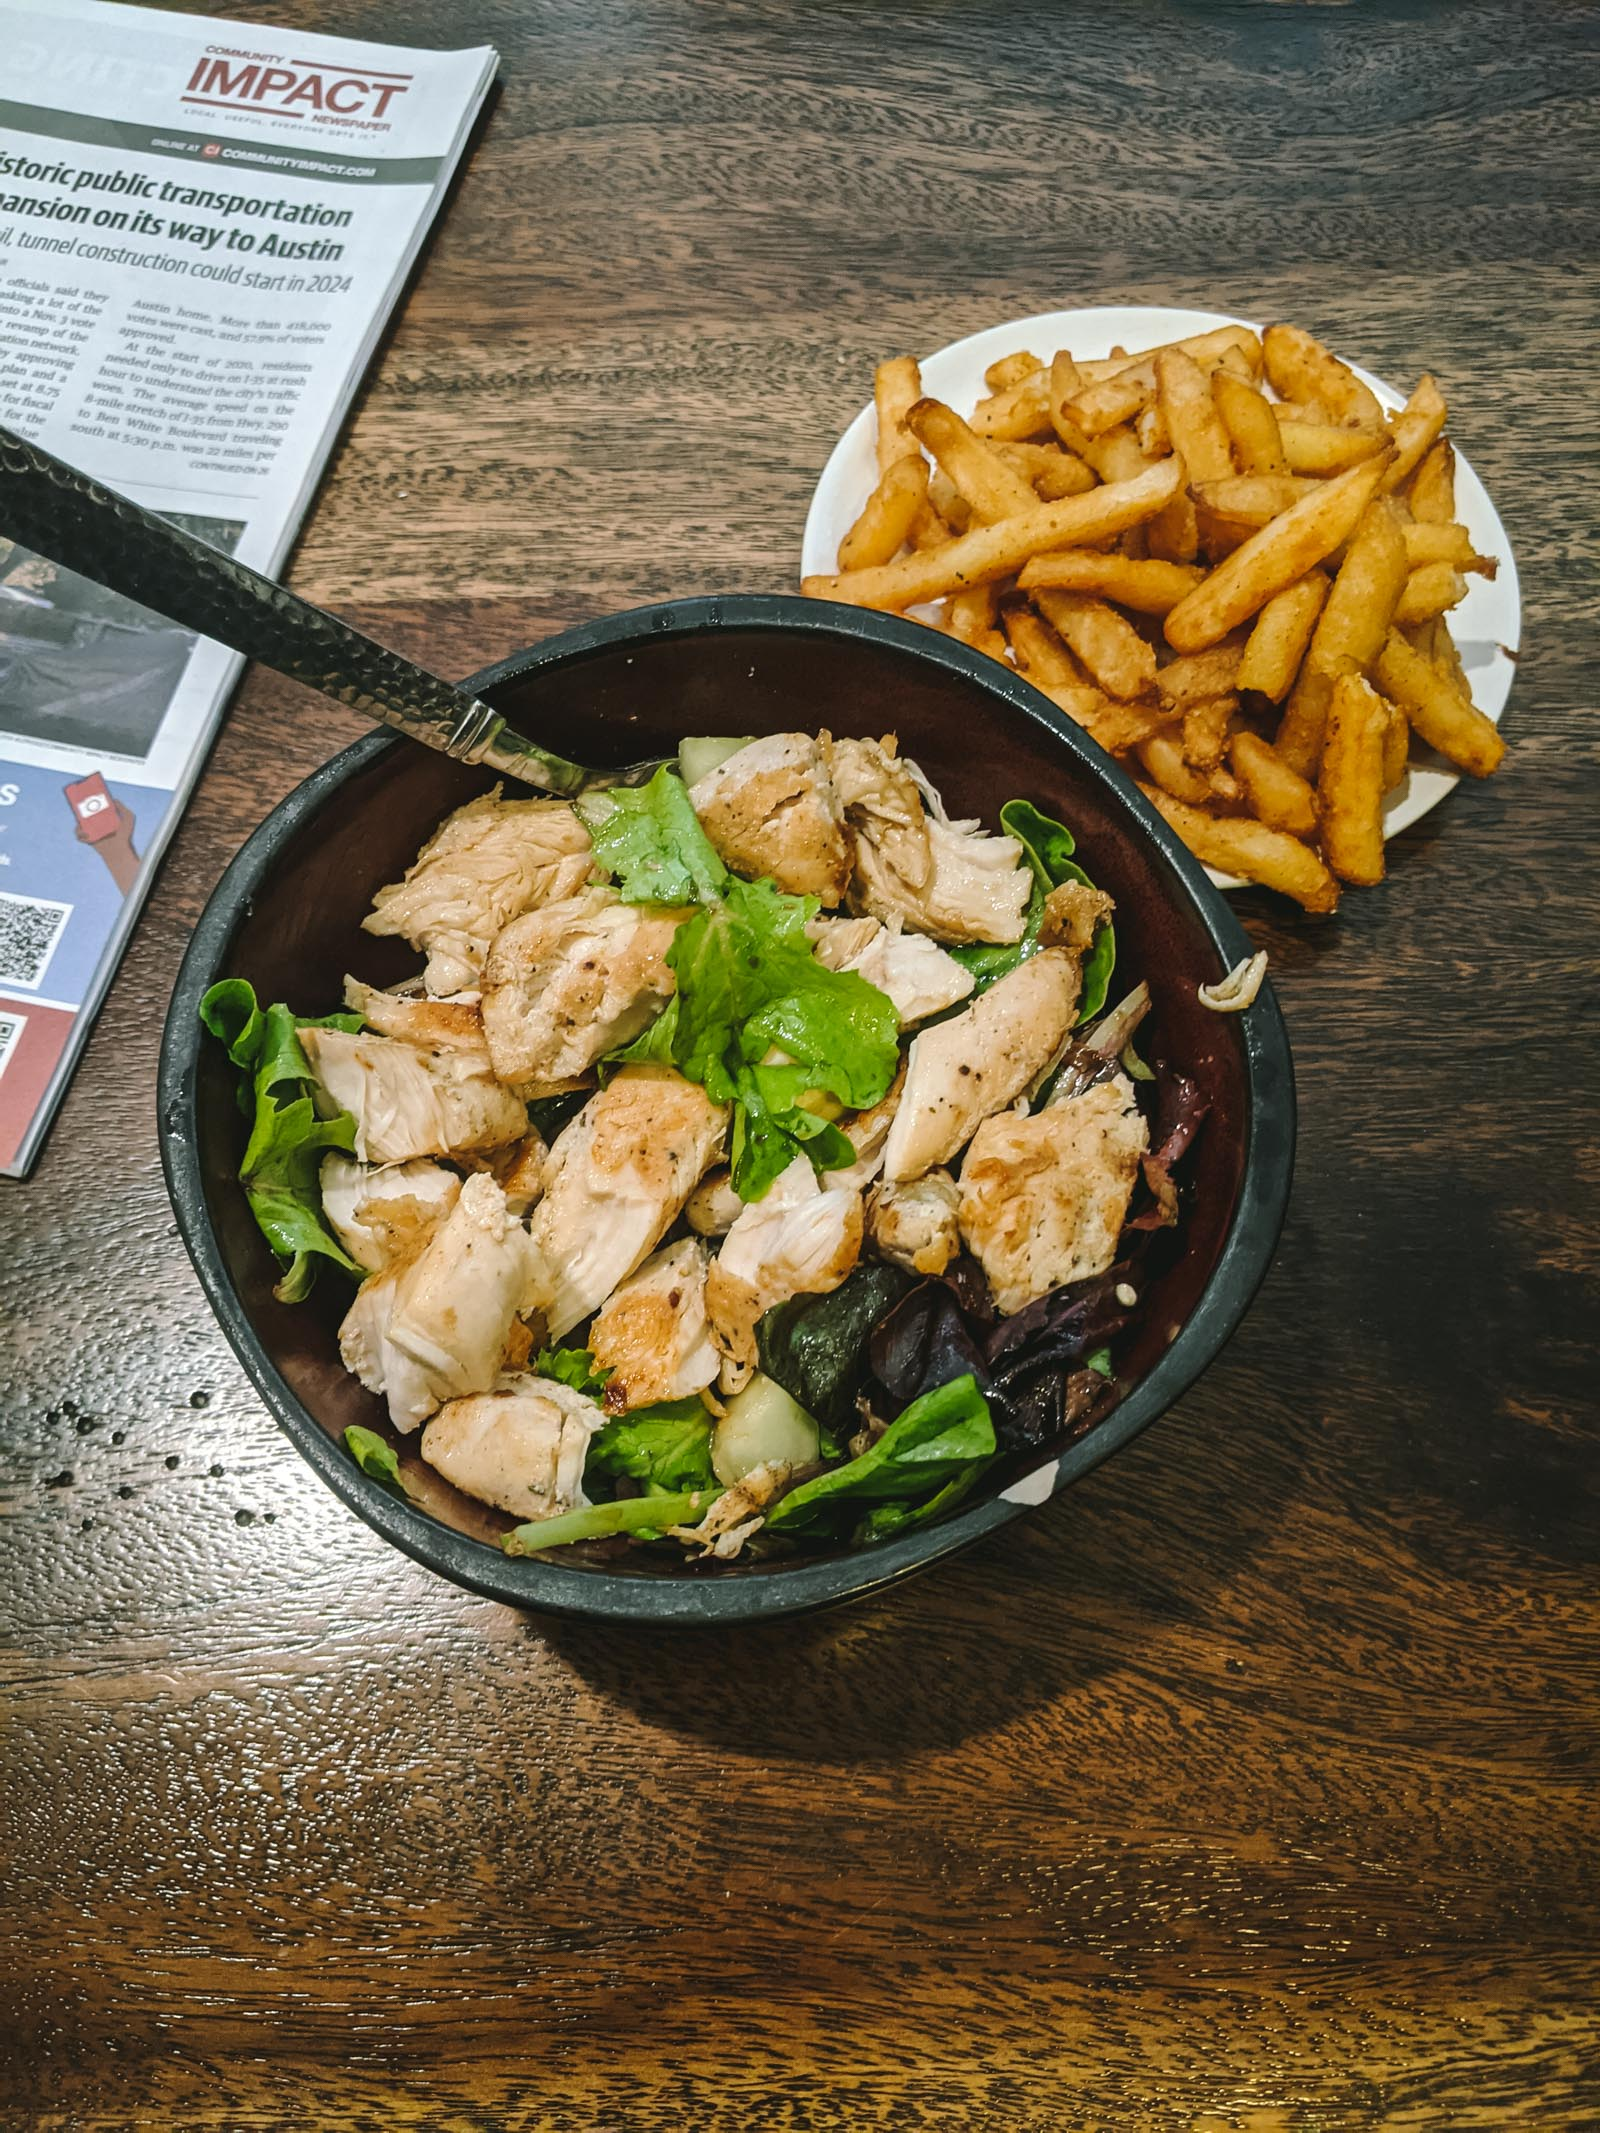 Salad with chicken + french fries